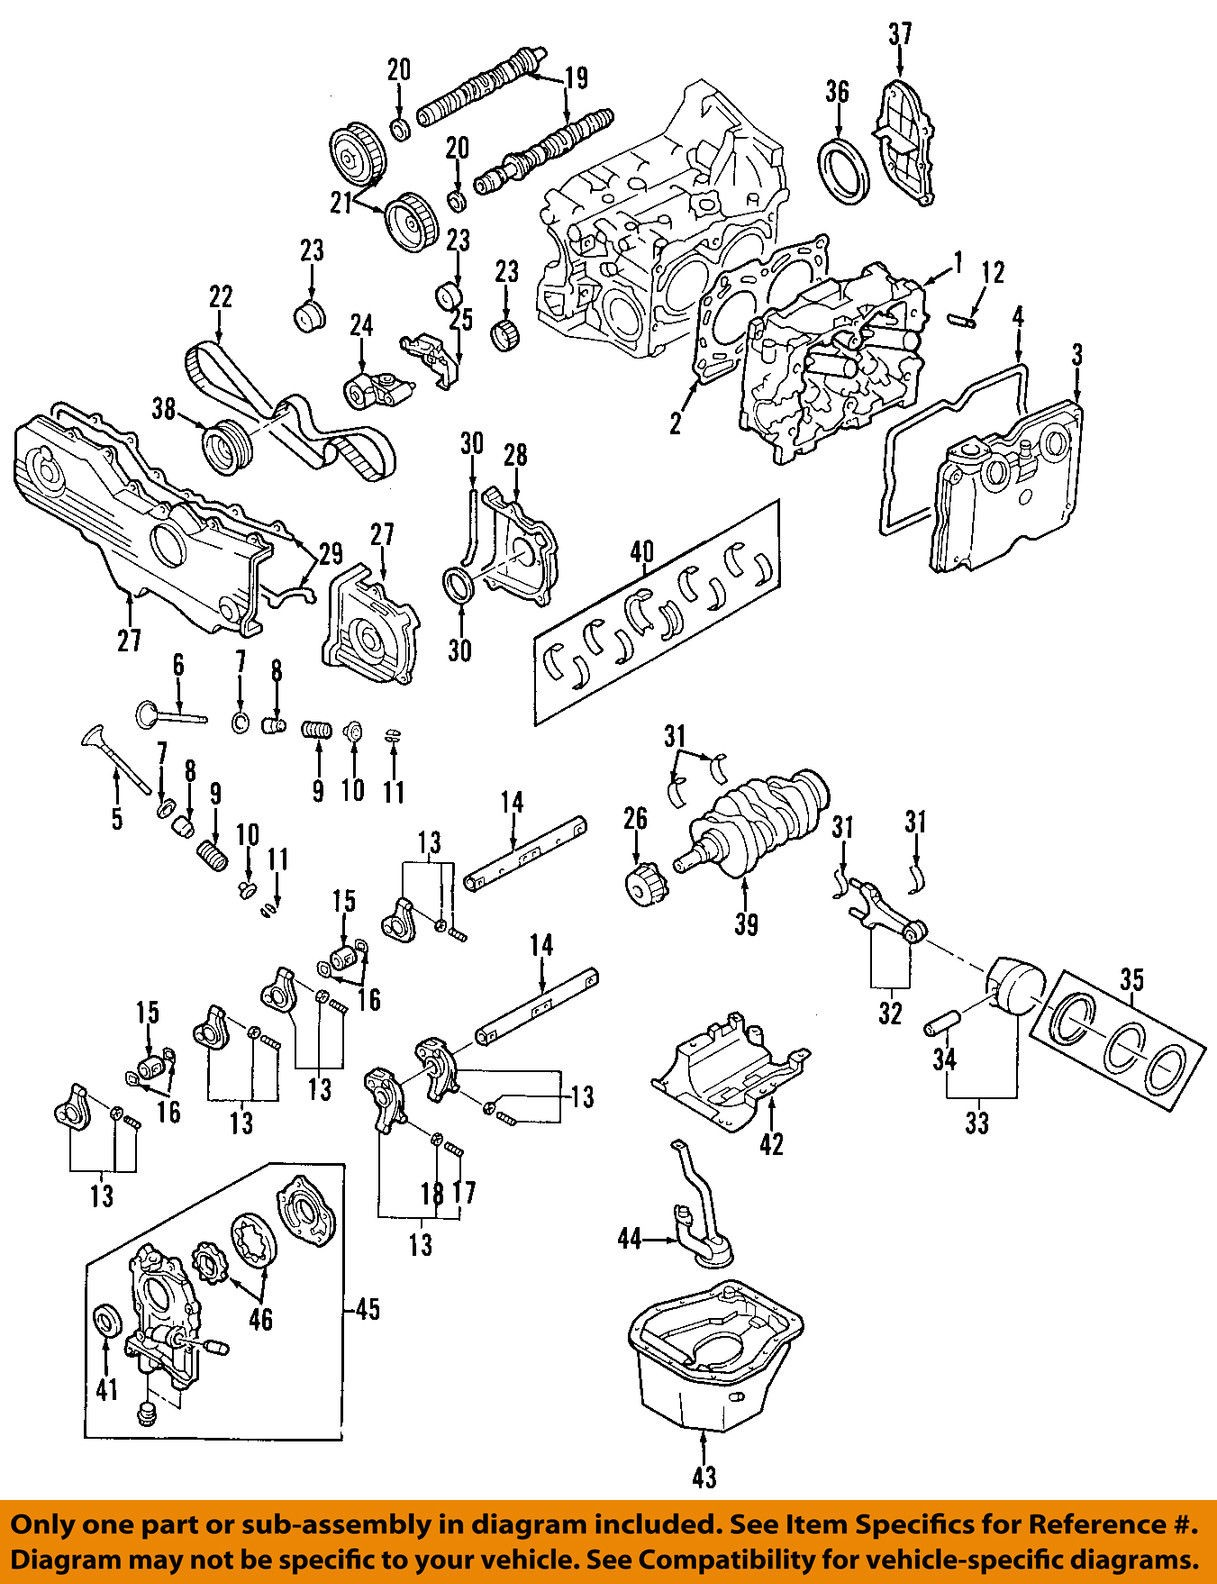 Subaru Engine Schematic Manual Guide Wiring Diagram Boxer 2006 Parts U2022 For Free 2008 Impreza Turbo